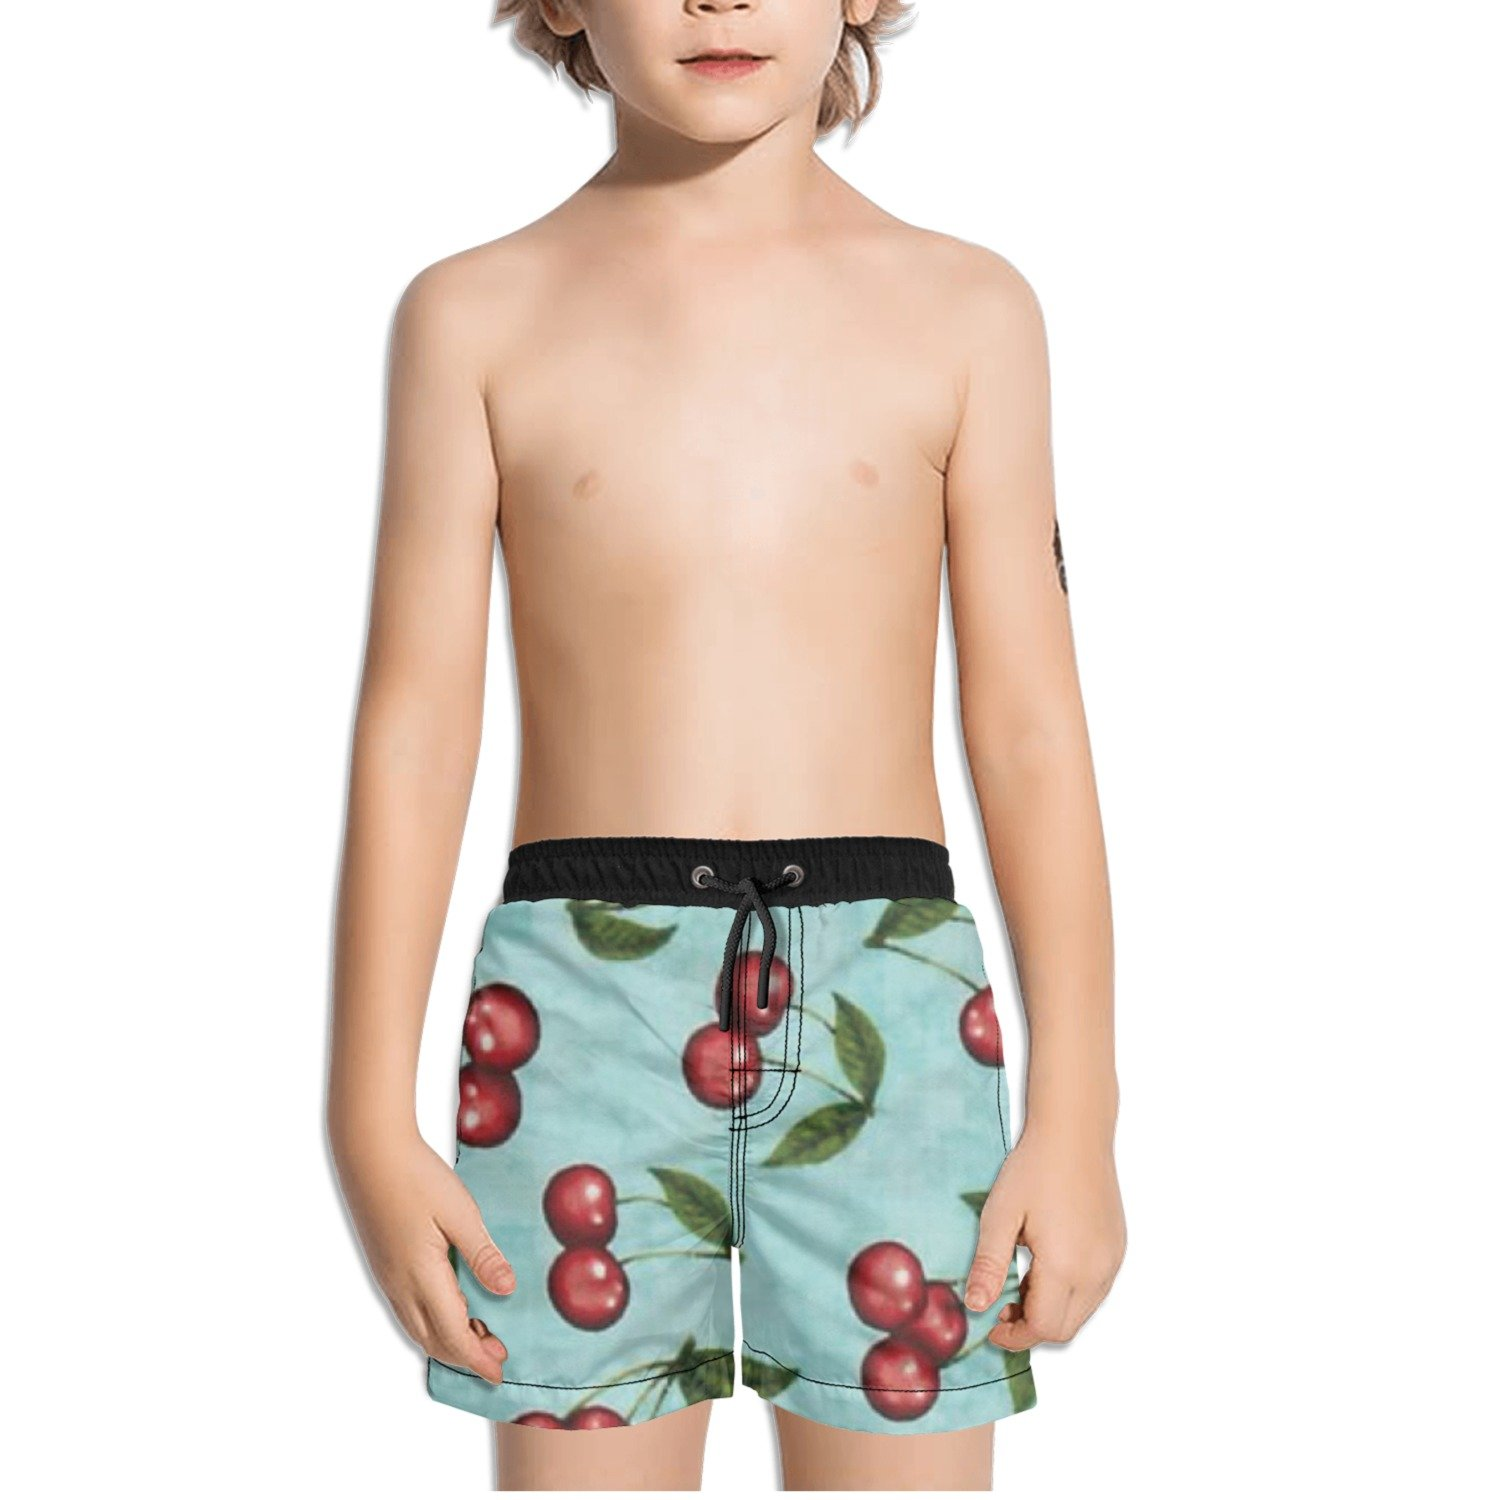 Ouxioaz Boys Swim Trunk Cherry Cherries Beach Board Shorts